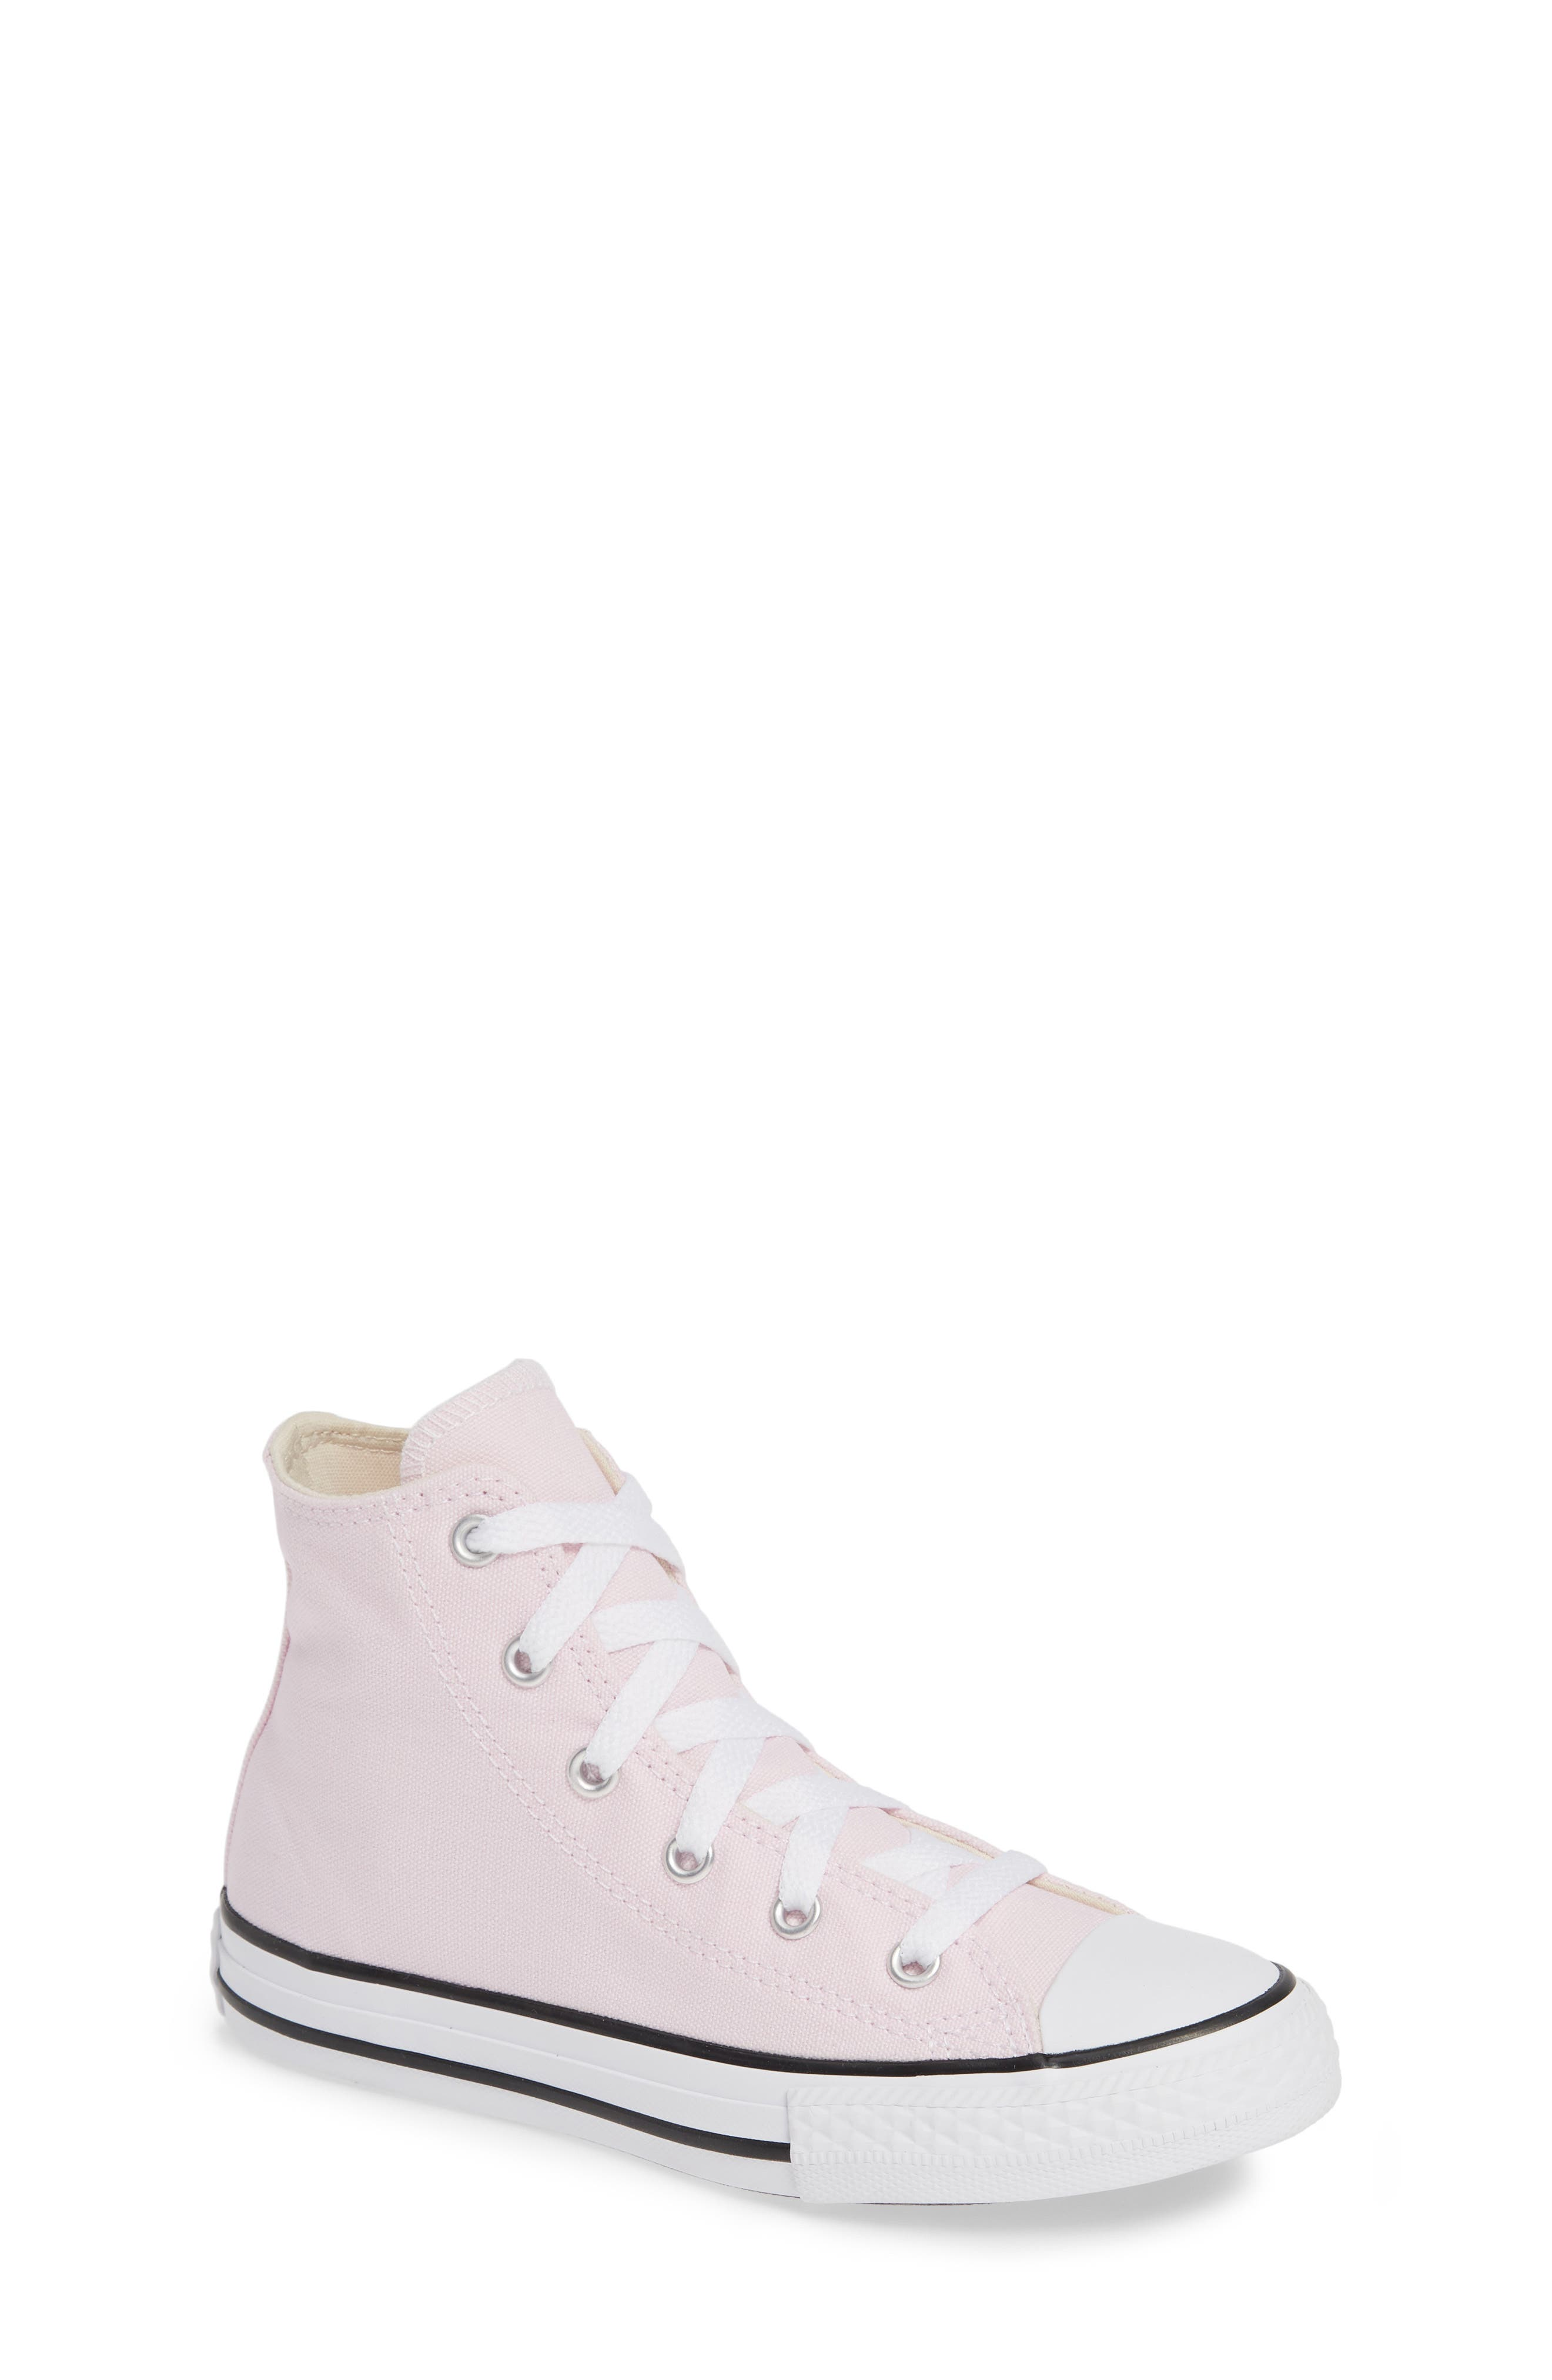 ,                             Chuck Taylor<sup>®</sup> High Top Sneaker,                             Main thumbnail 1, color,                             PINK FOAM/ IVORY/ WHITE